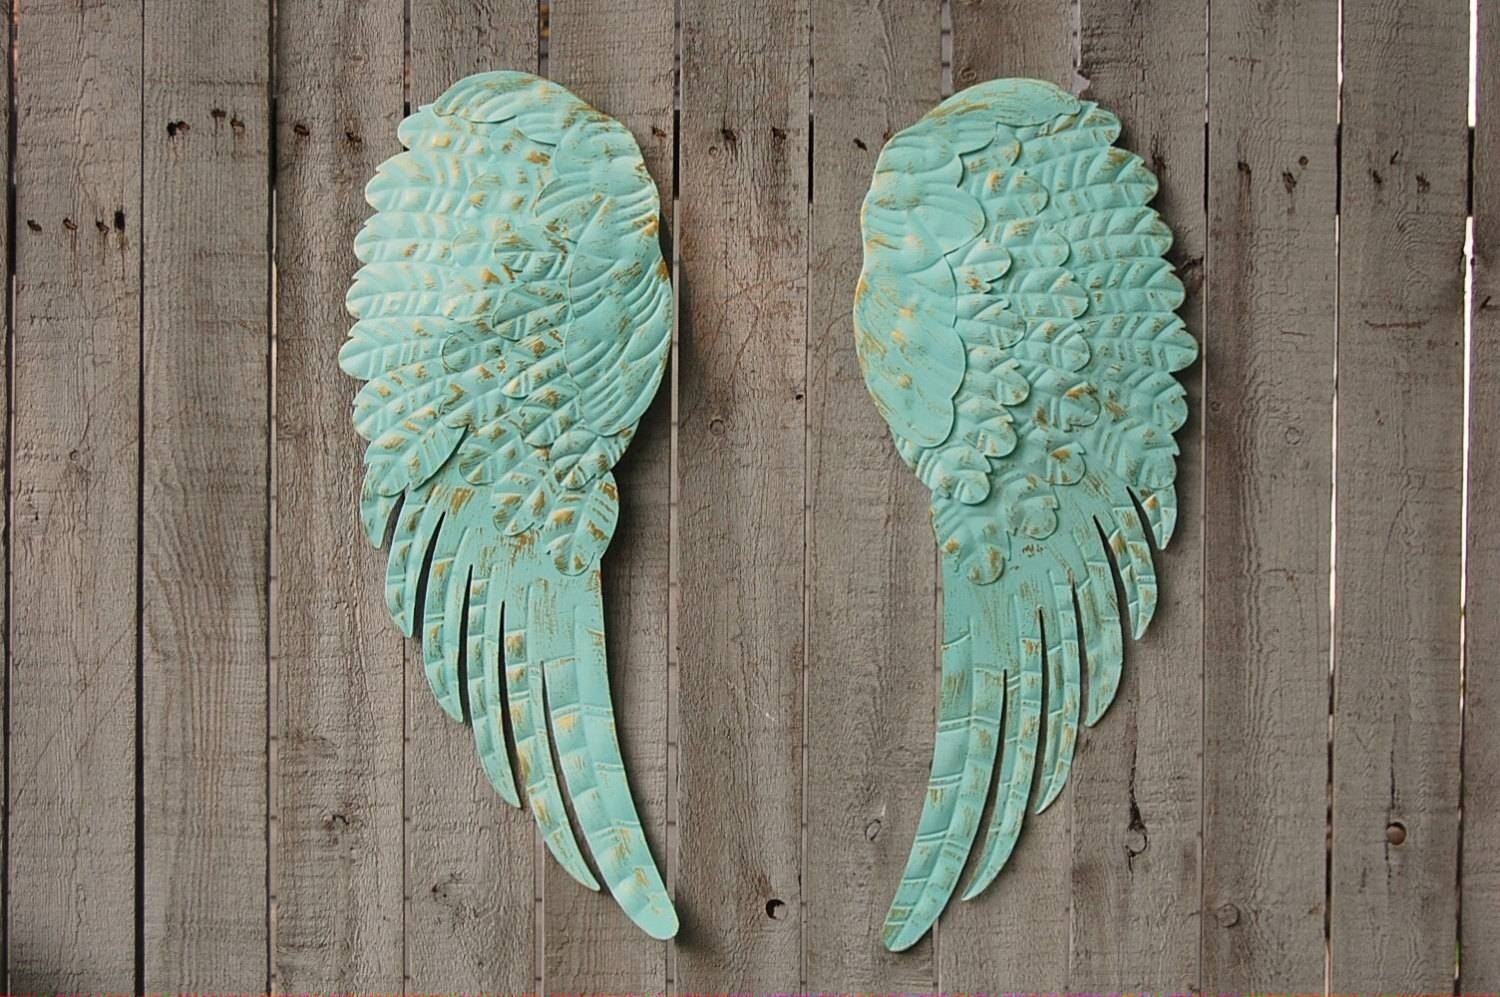 Angel Wings Wall Decor Shabby Chic Aqua Gold Hand Inside Latest Angel Wings Wall Art (View 7 of 20)